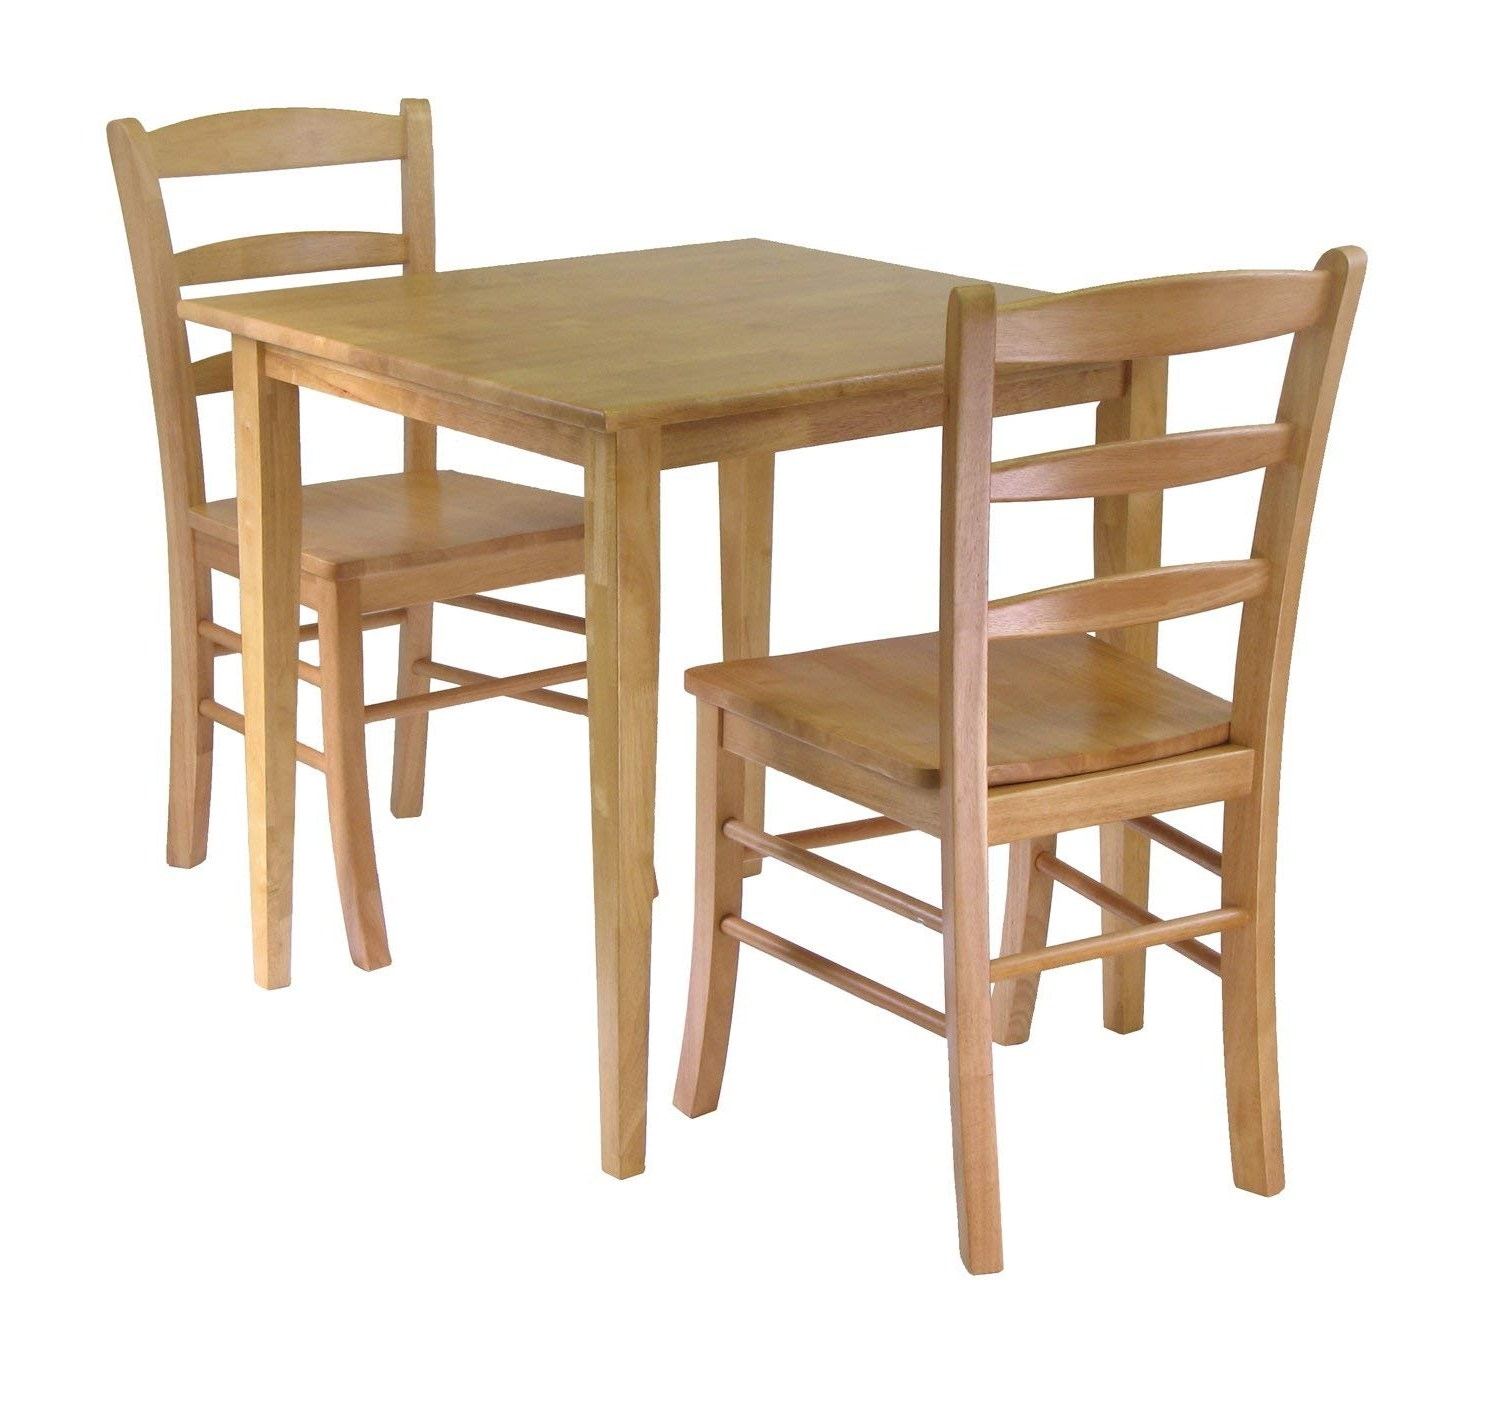 Amazon – Winsome Groveland 3 Piece Wood Dining Set, Light Oak Regarding Most Up To Date Cheap Dining Tables Sets (View 20 of 25)